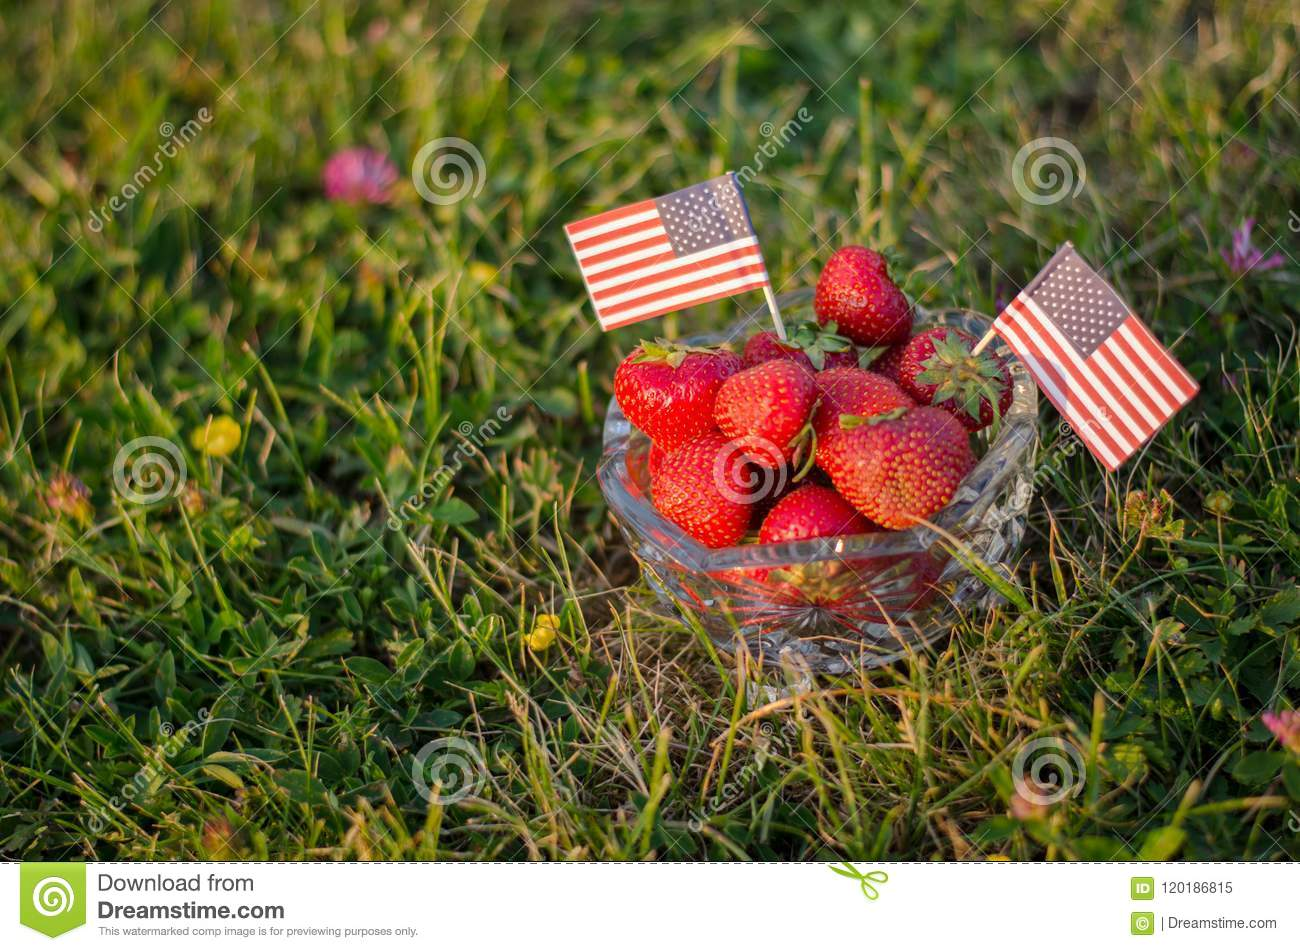 Strawberries in a bowl with american flags